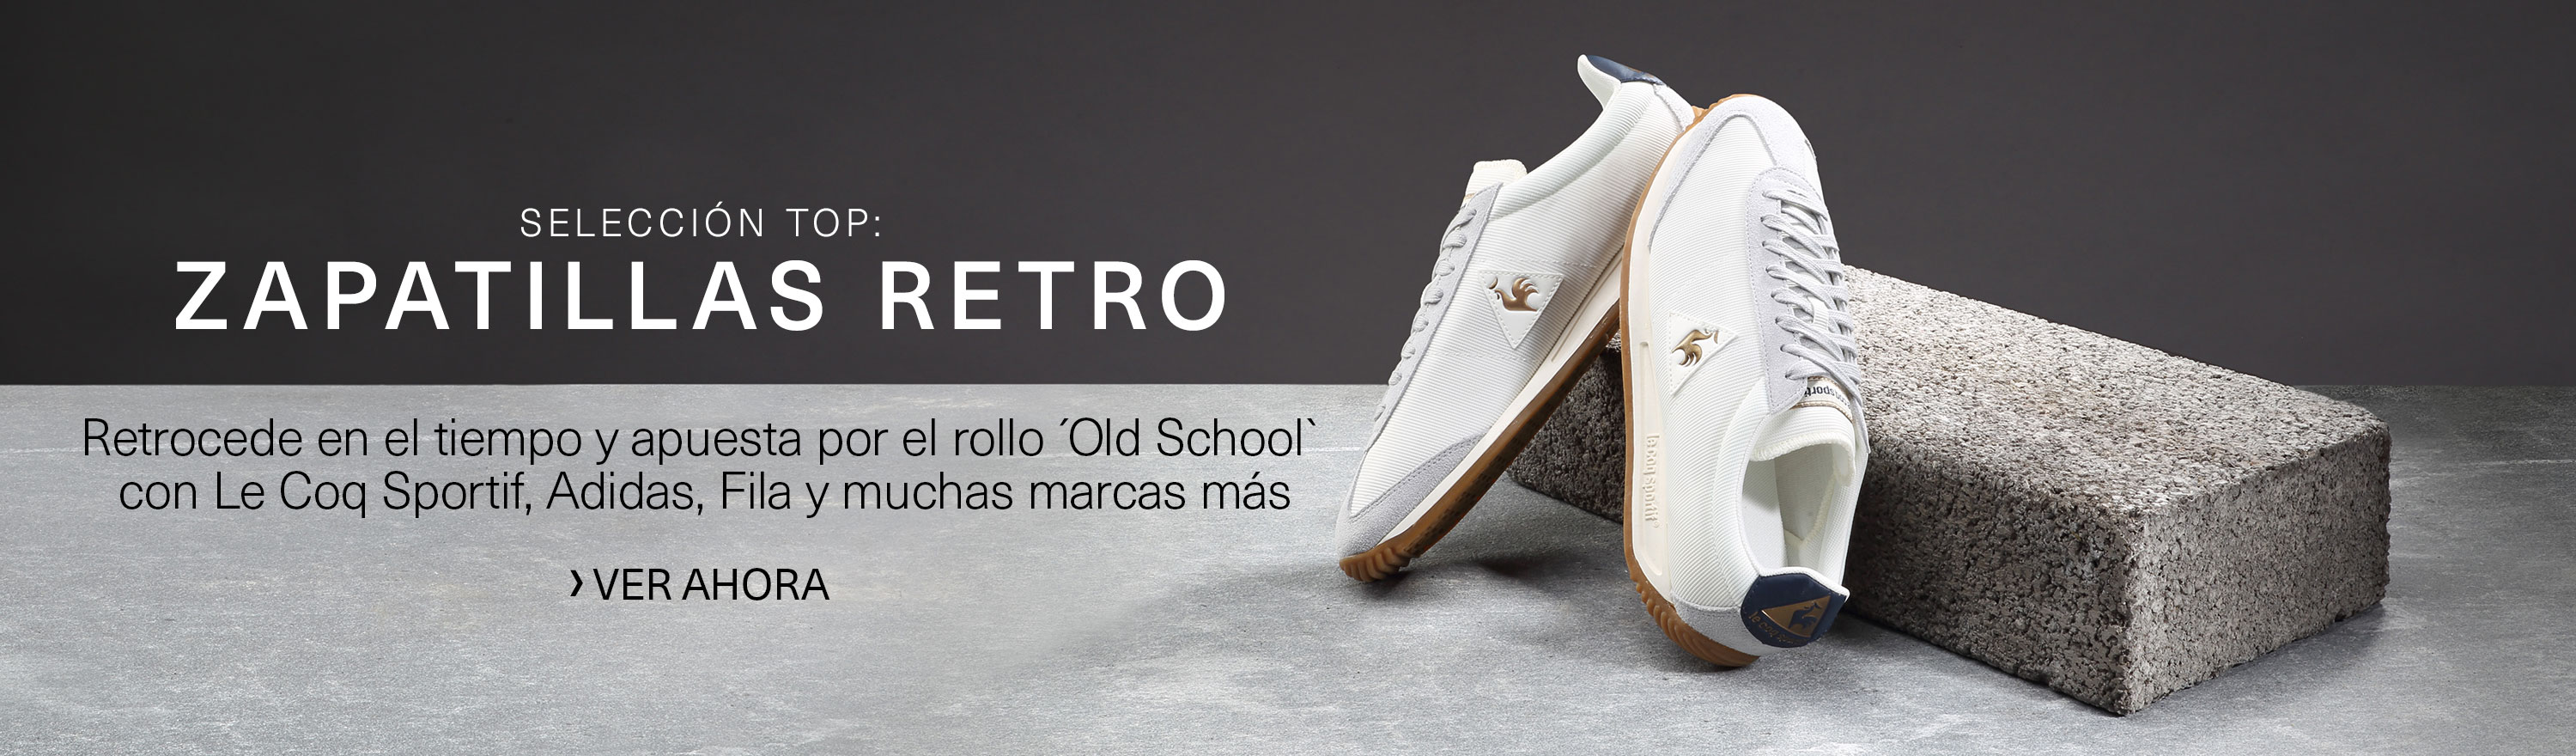 Zapatillas retro